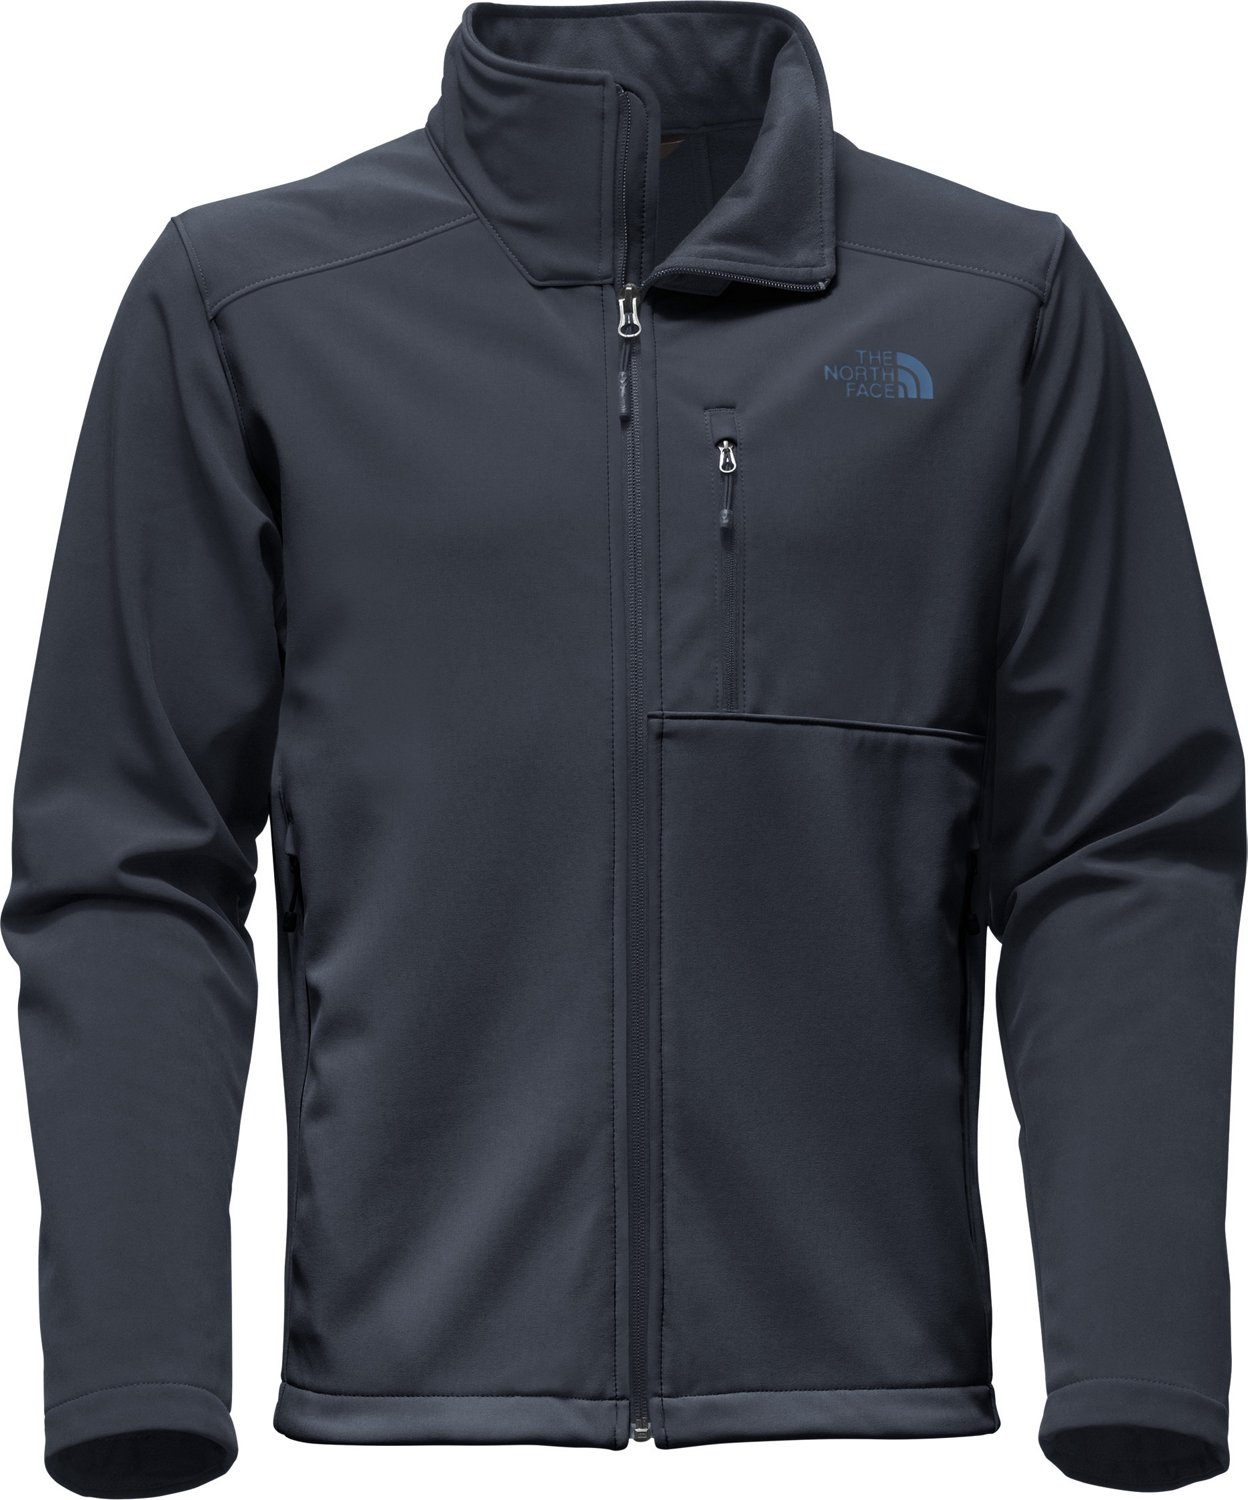 d5ff905117 Display product reviews for The North Face Men s Apex Bionic 2 Jacket